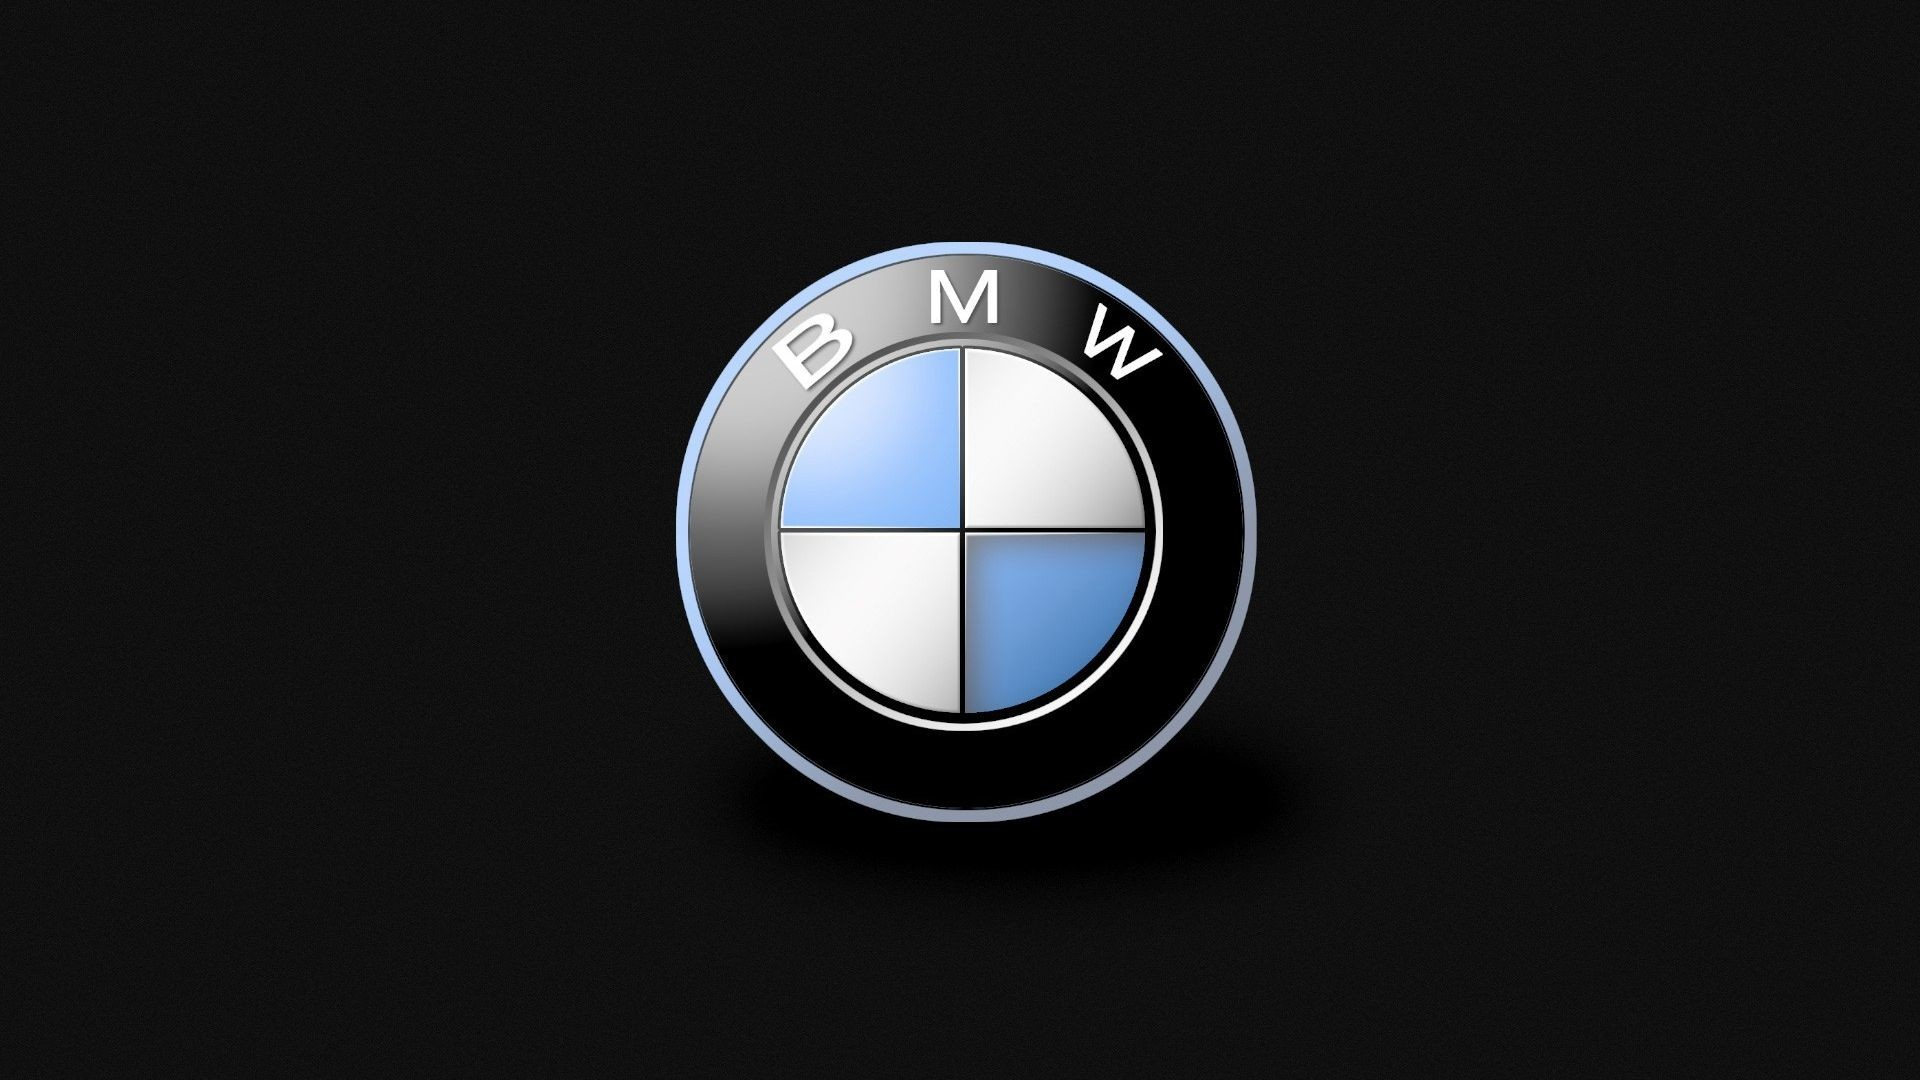 1920x1080 BMW Car Brand Logo and Black Background